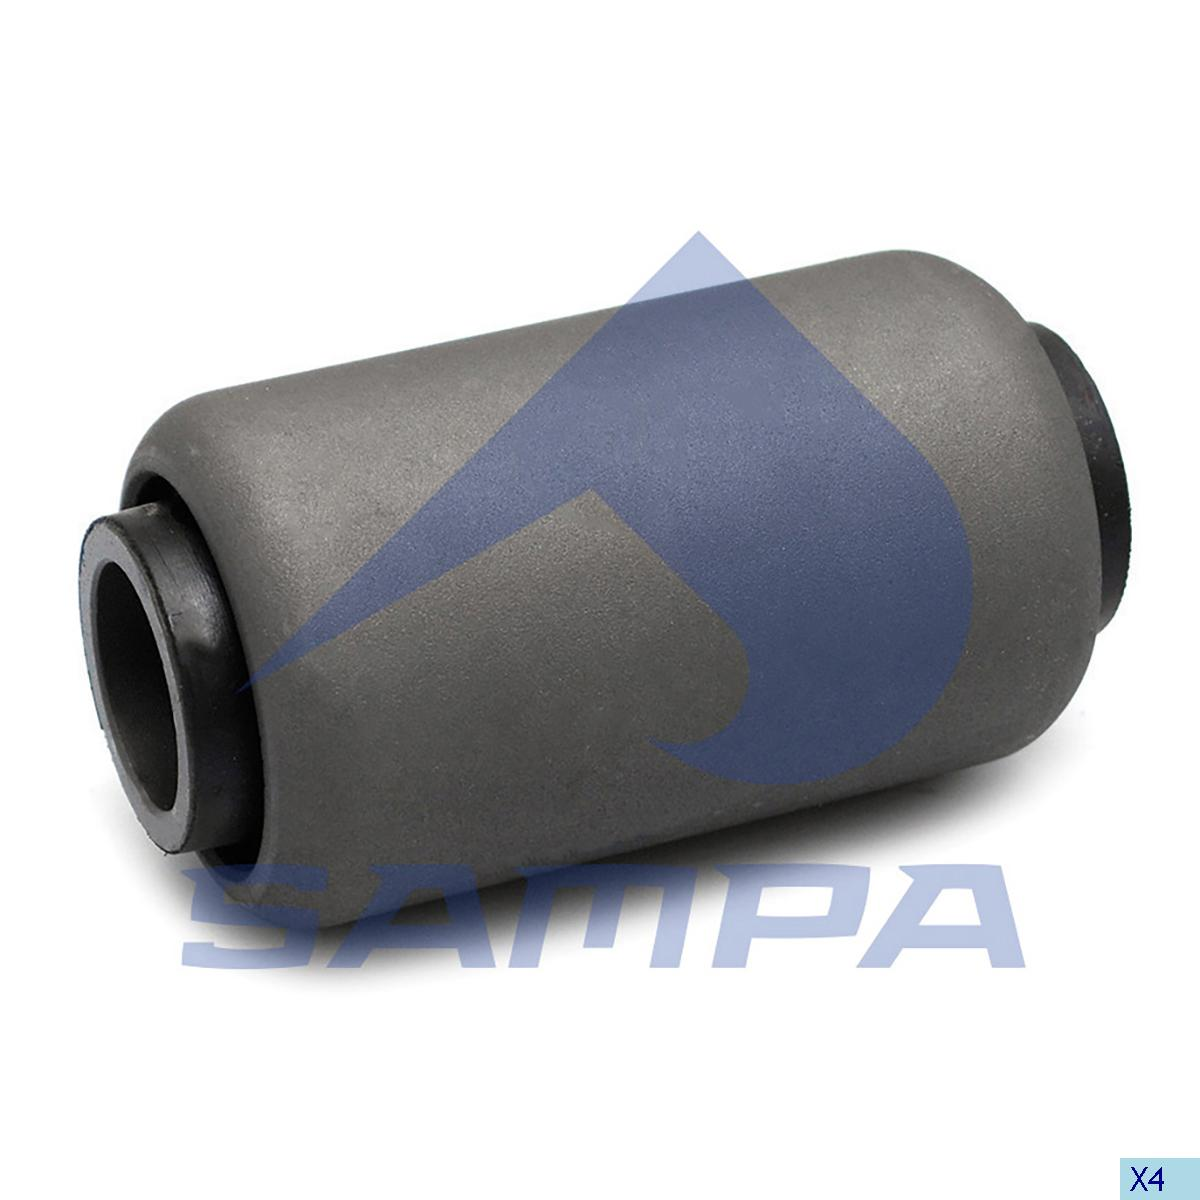 Rubber Bushing, Spring, Scania, Suspension